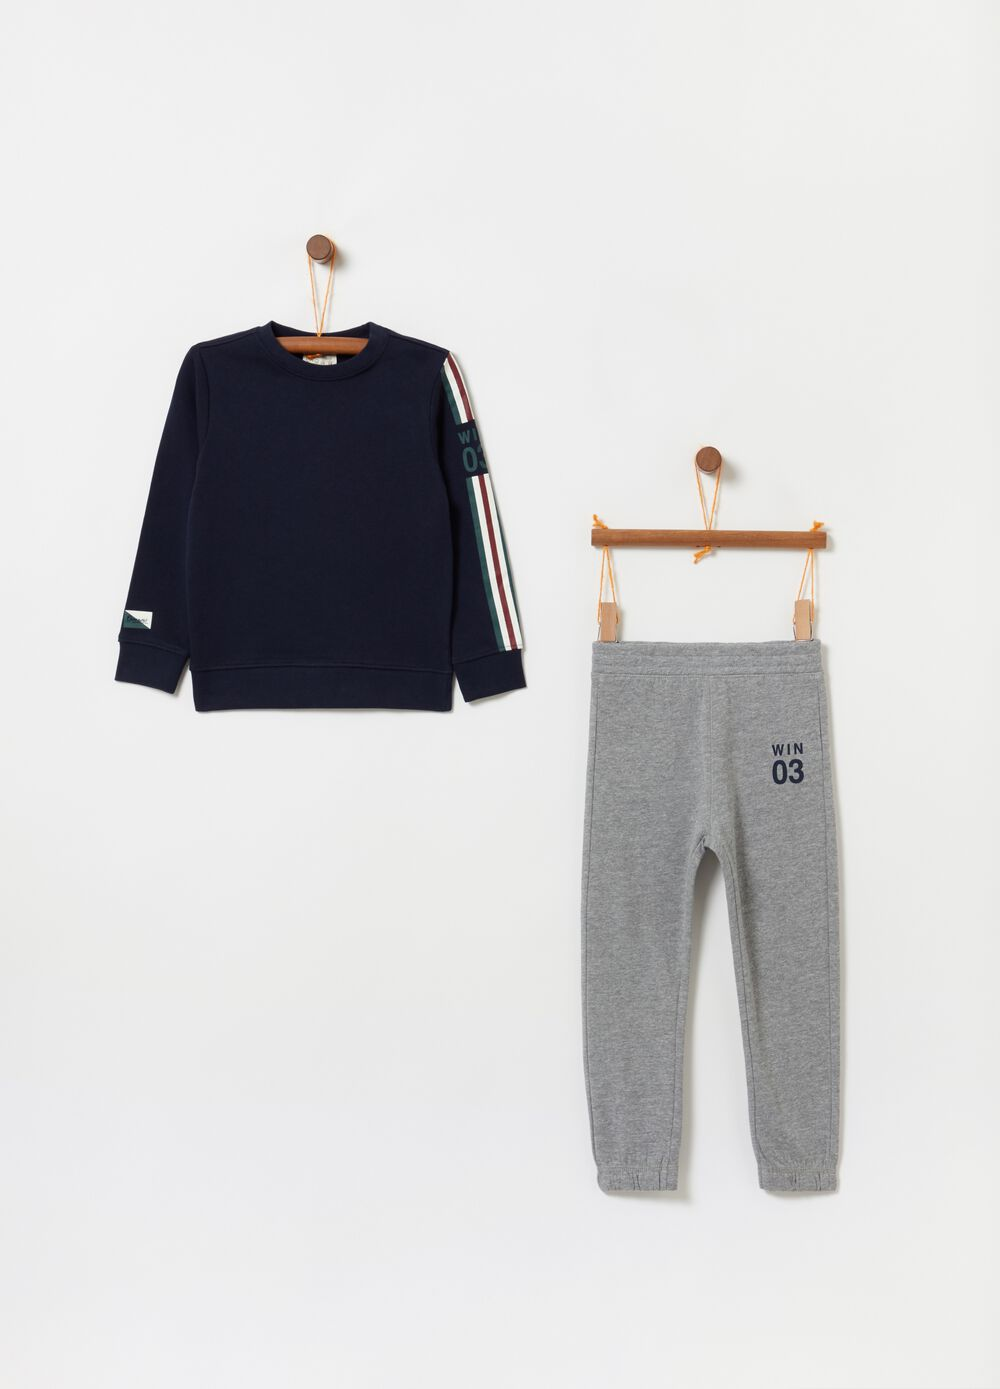 Cotton fleece jogging set with print